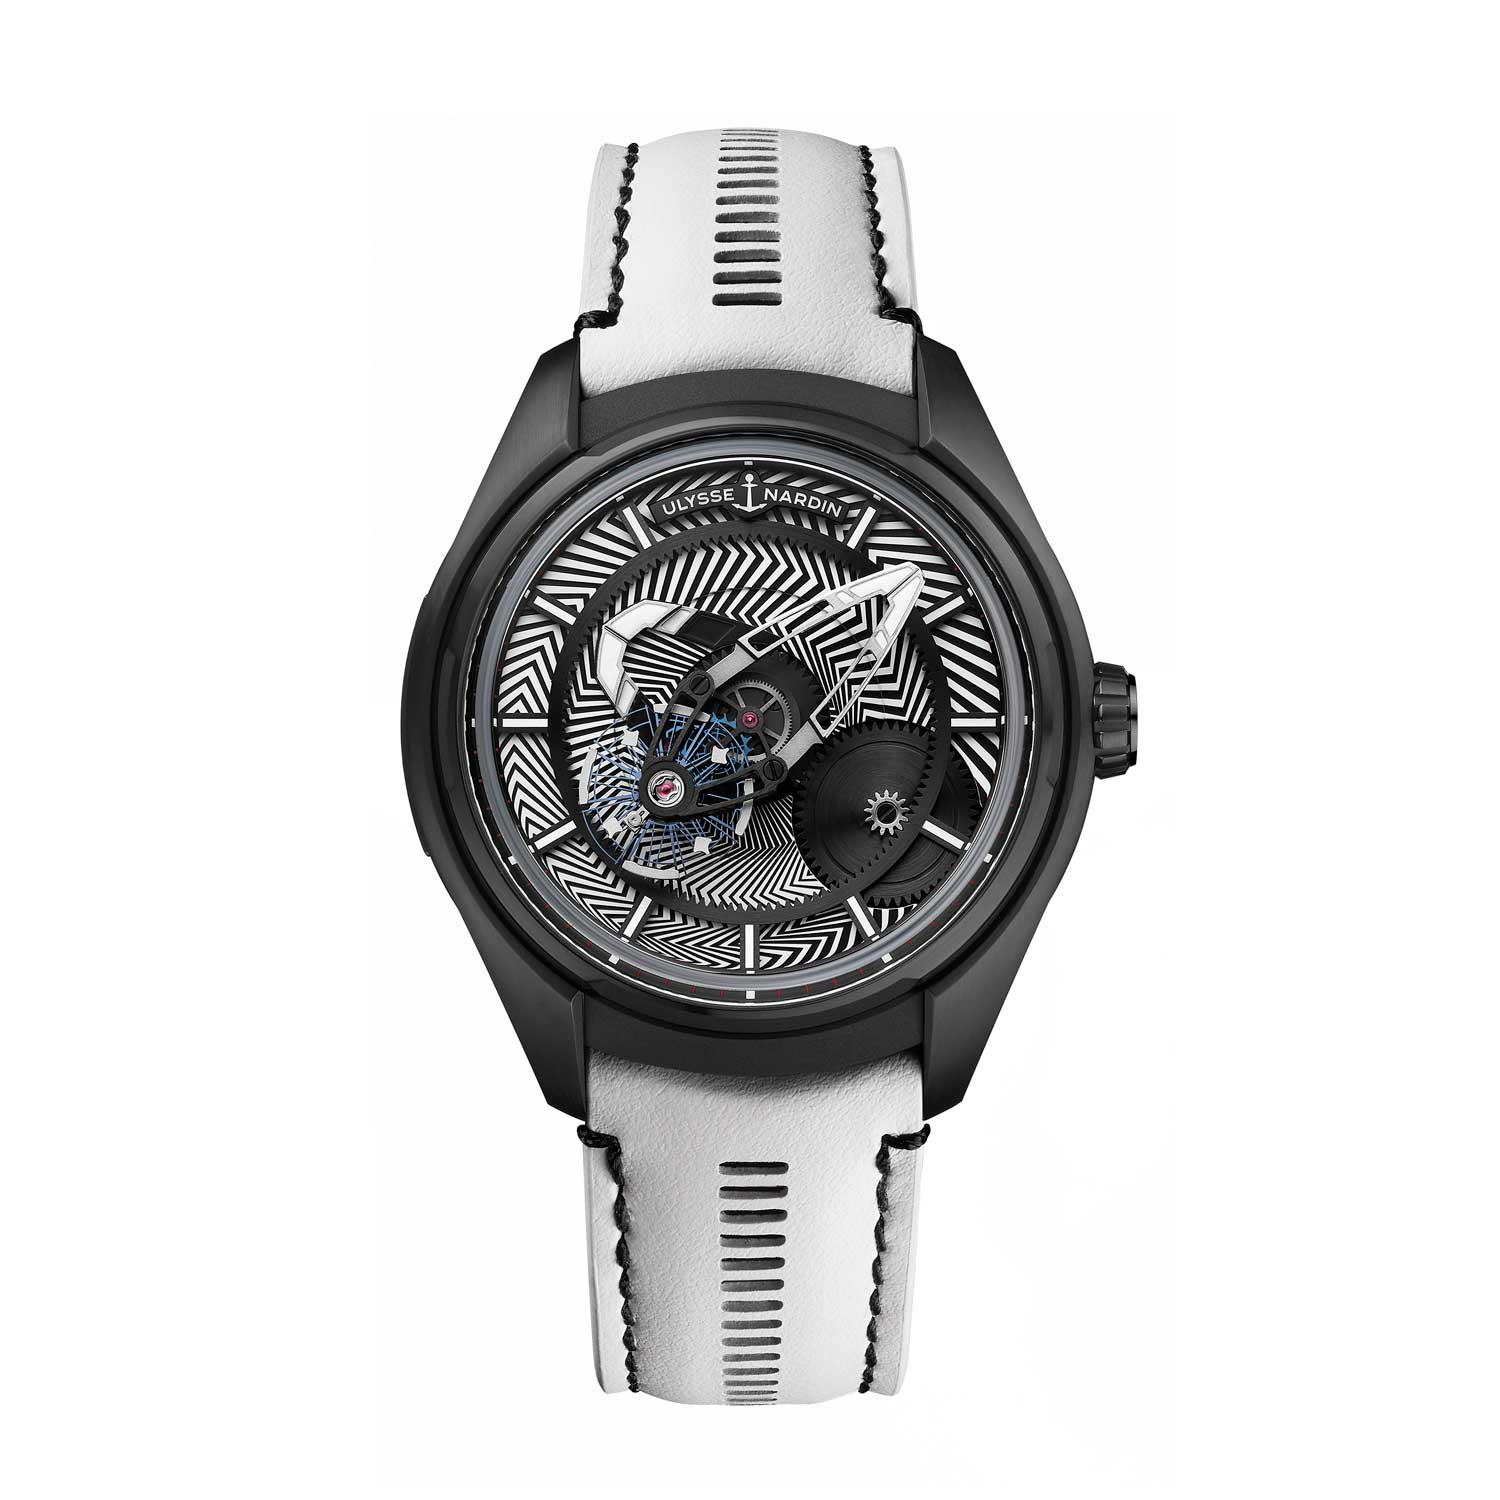 """Limited to 30 pieces, Ulysse Nardin's Freak X Razzle Dazzle features a black rubber leather strap with """"point de bride"""" stitches or white openwork calfskin leather strap."""